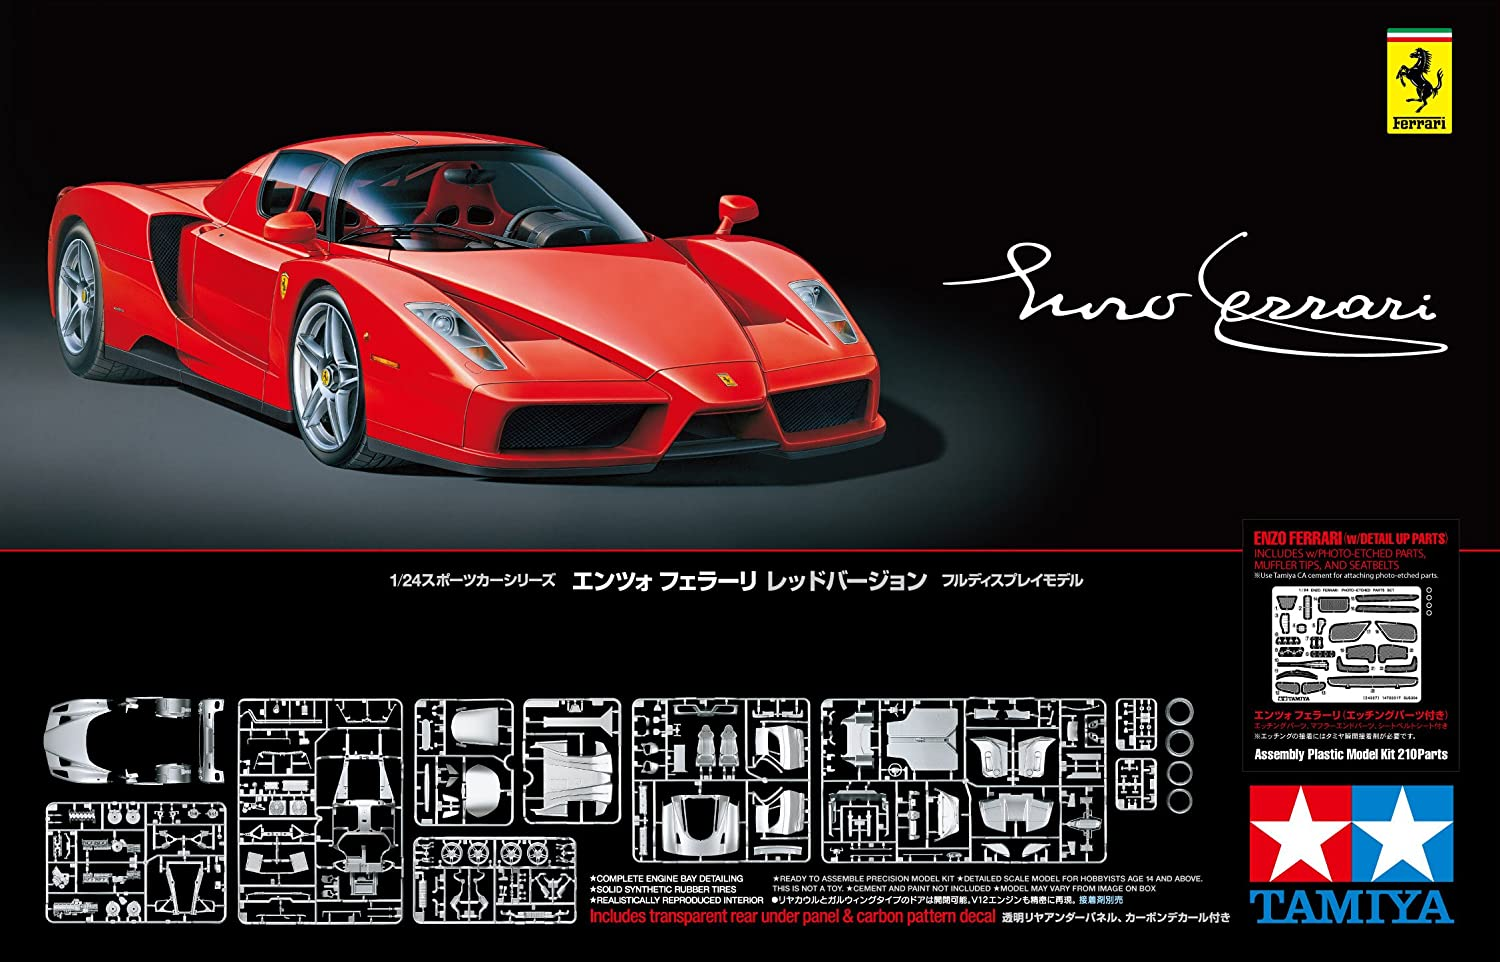 Amazon.com: Tamiya Enzo Ferrari with Detailed Parts 1/24 Scale Model